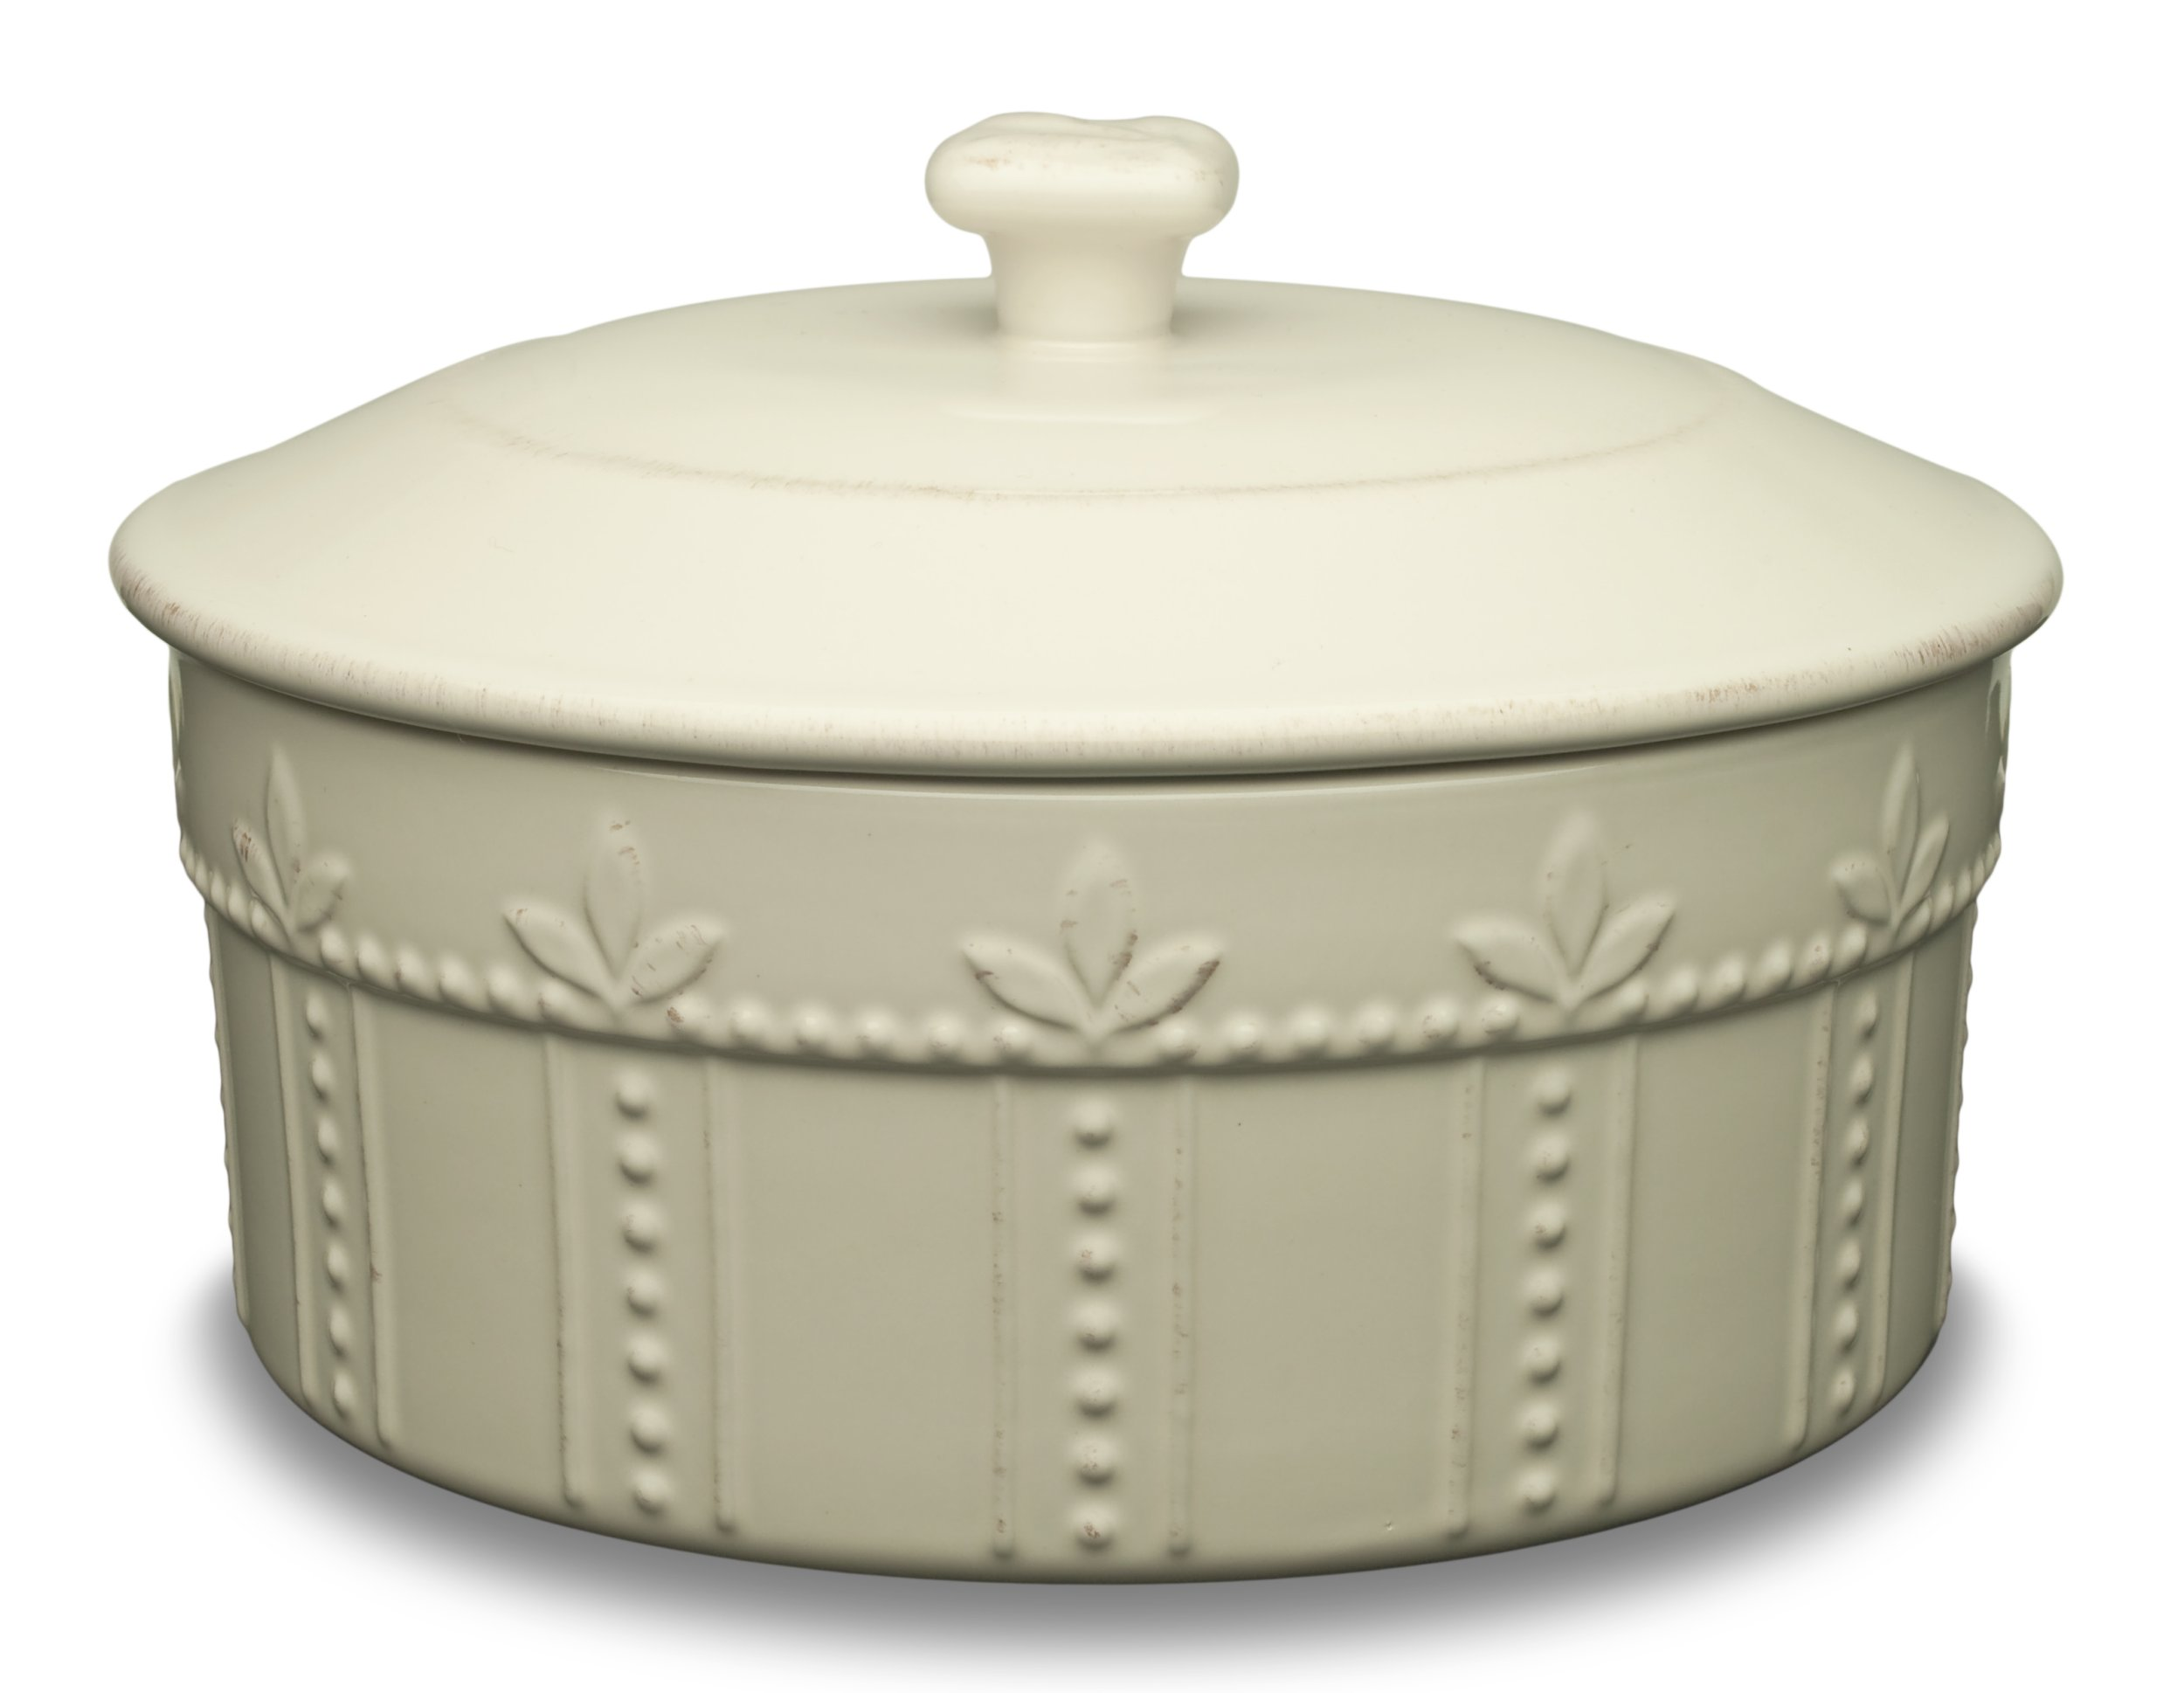 Signature Housewares Sorrento Collection 8.5-Inch Covered Souffle Dish, Ivory Antiqued Finish